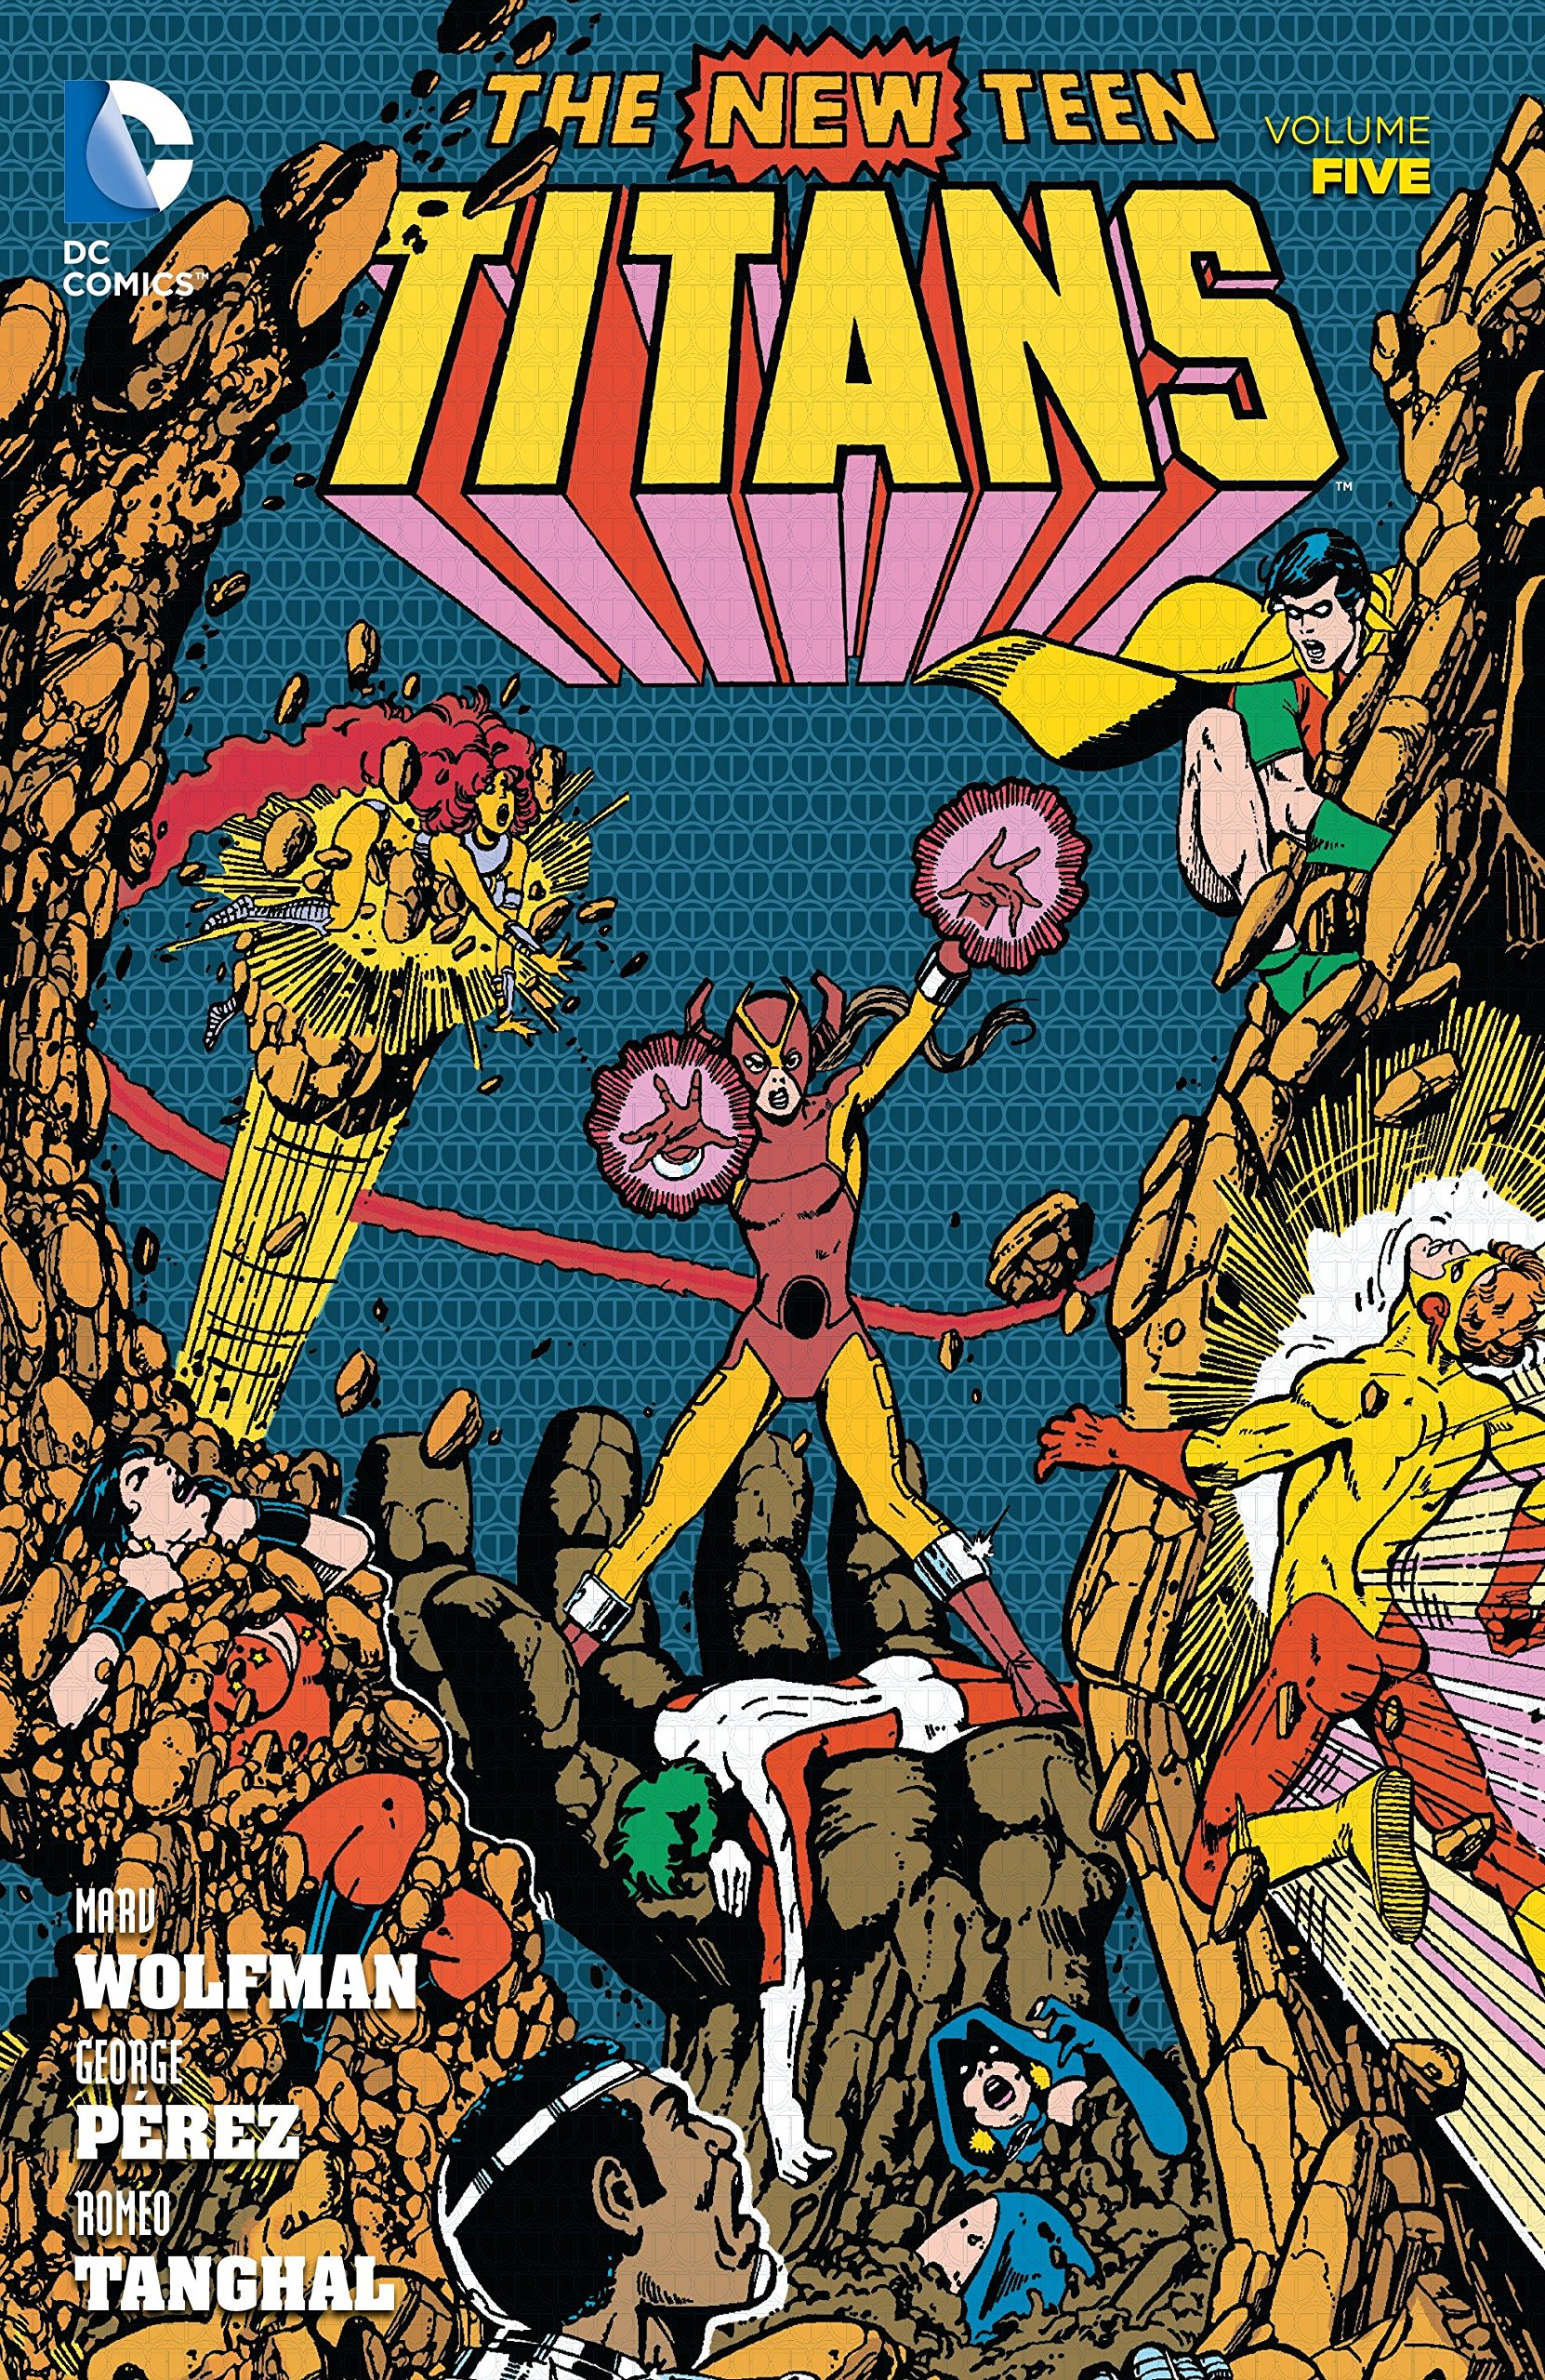 New Teen Titans Vol. 5 Paperback – August 2, 2016